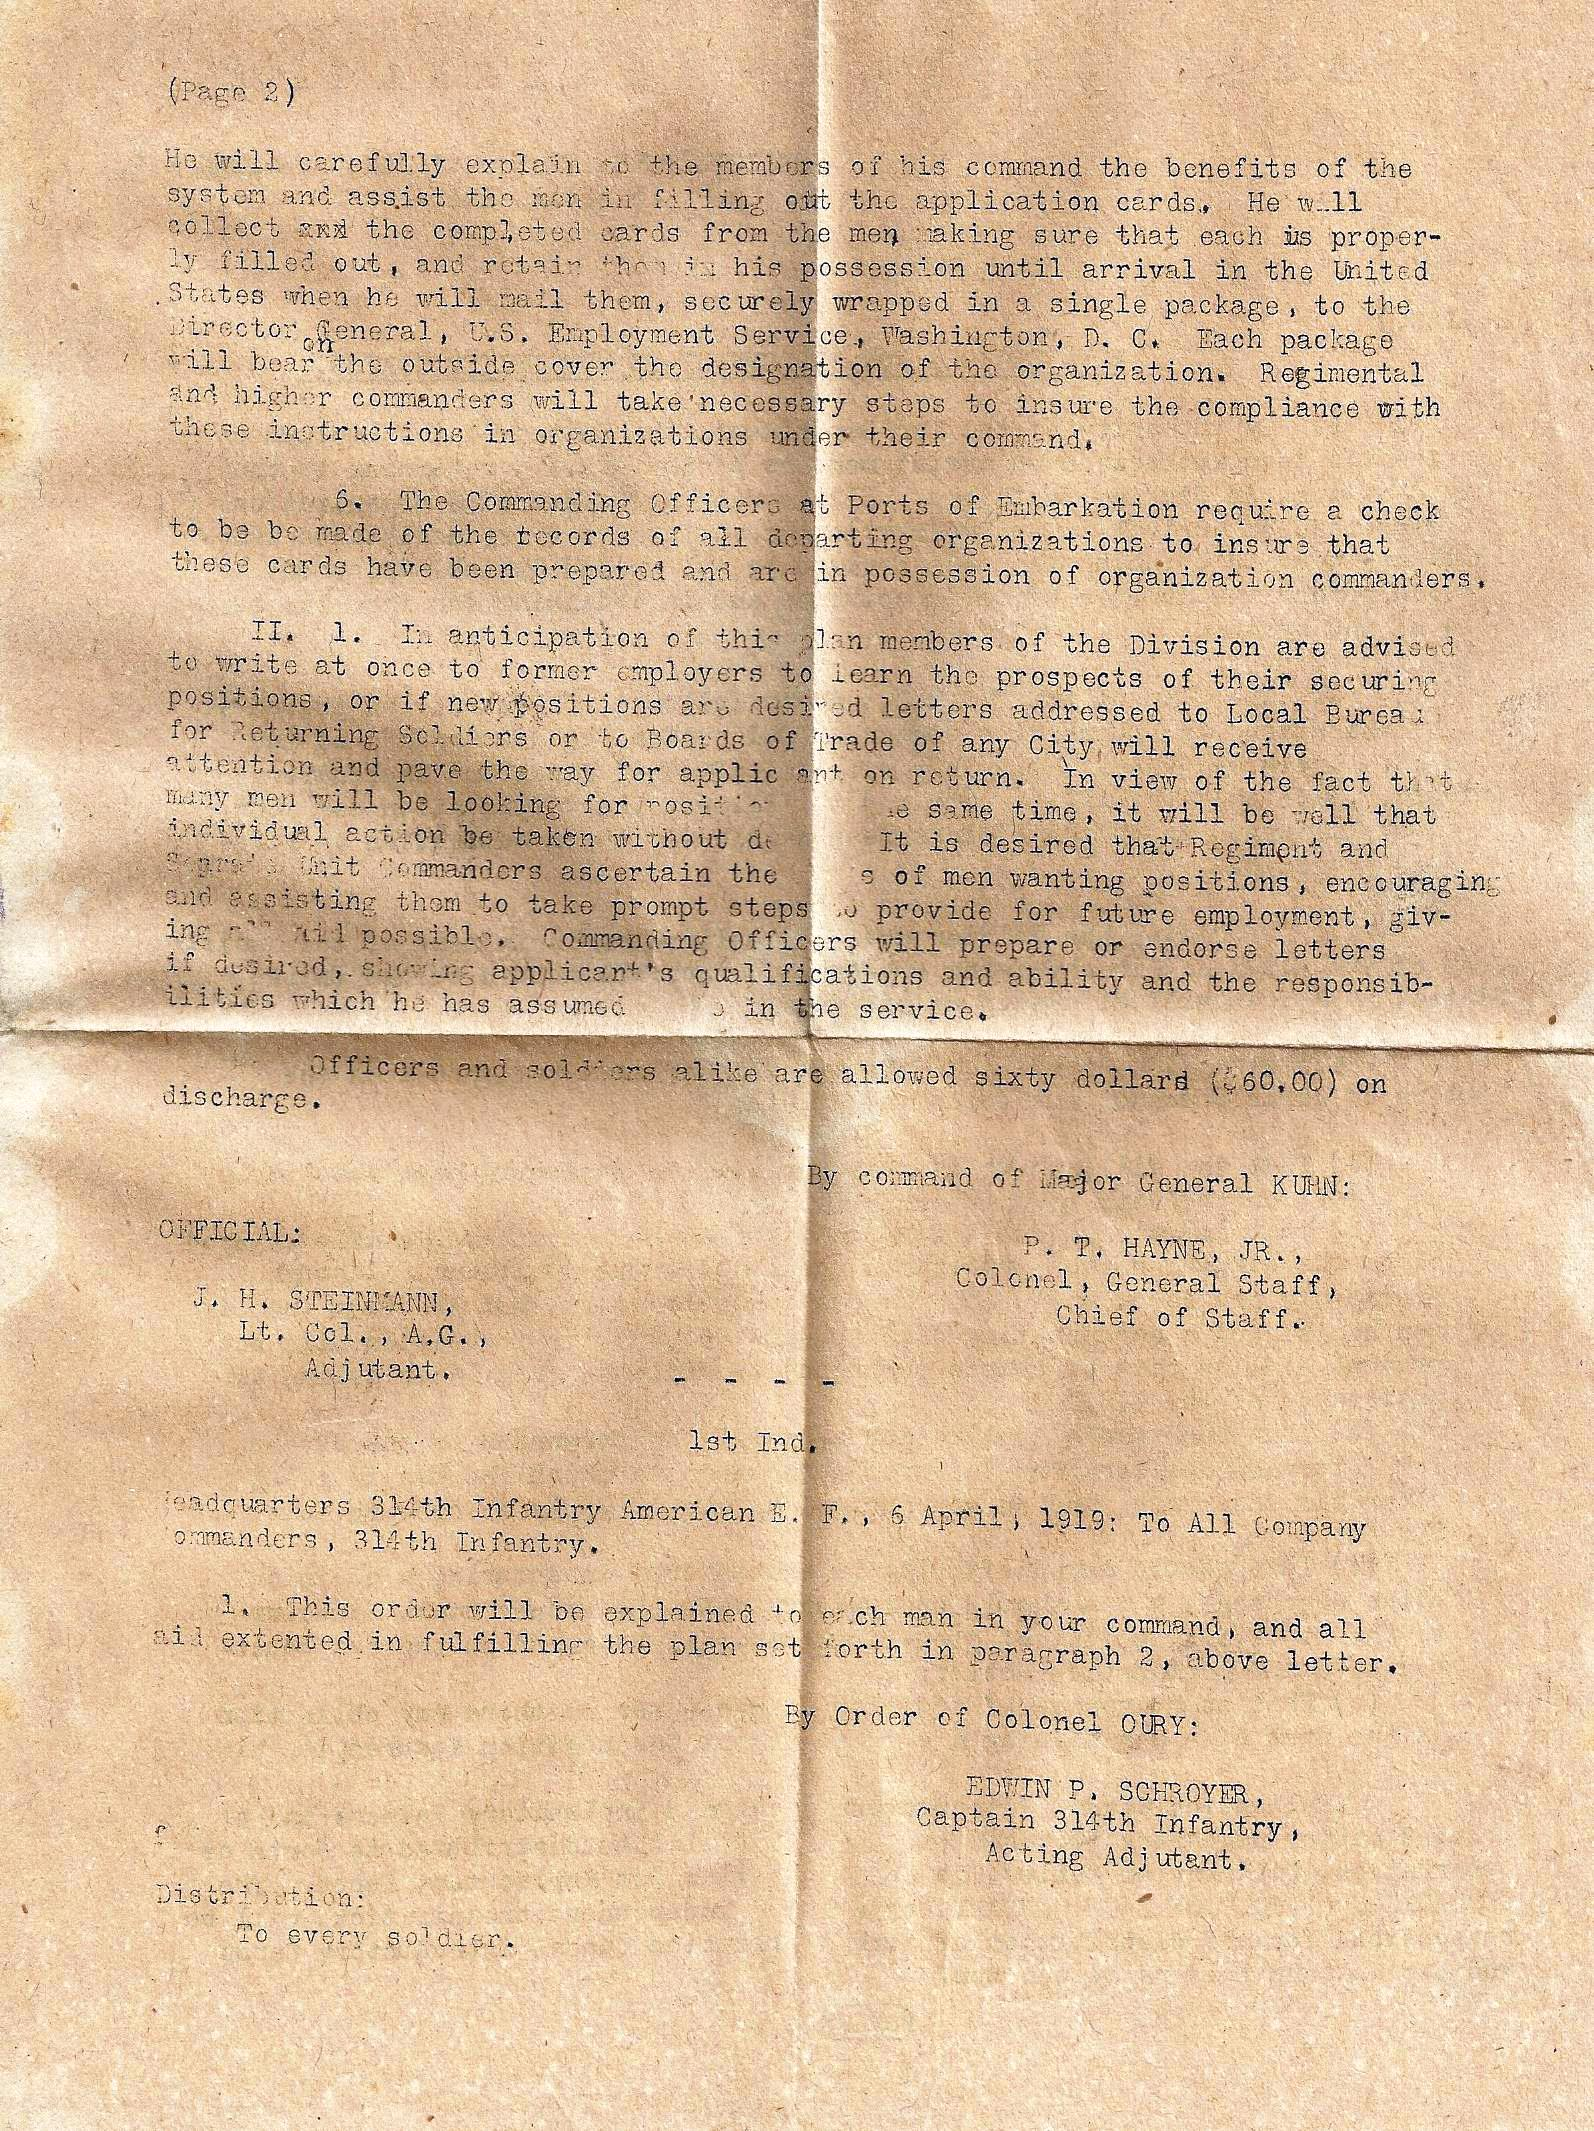 James M. Draper - Machine Gun Company - 314th Infantry 79th Division A.E.F. - Application for Employment - 2 of 2